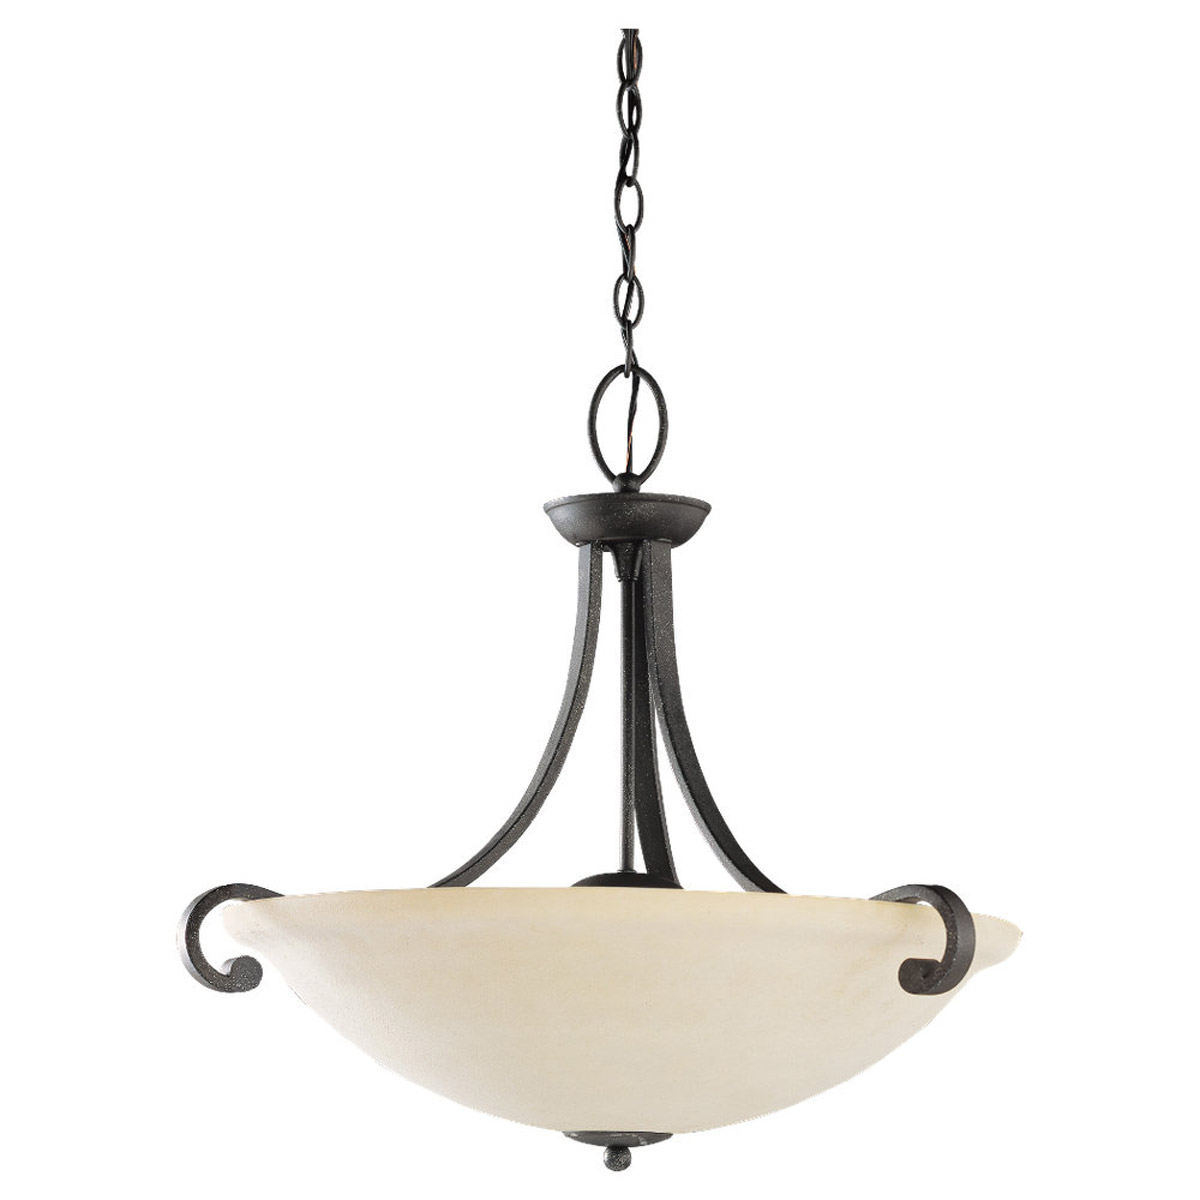 Sea Gull Lighting Serenity 3 Light Pendant in Weathered Iron 65191-07 photo